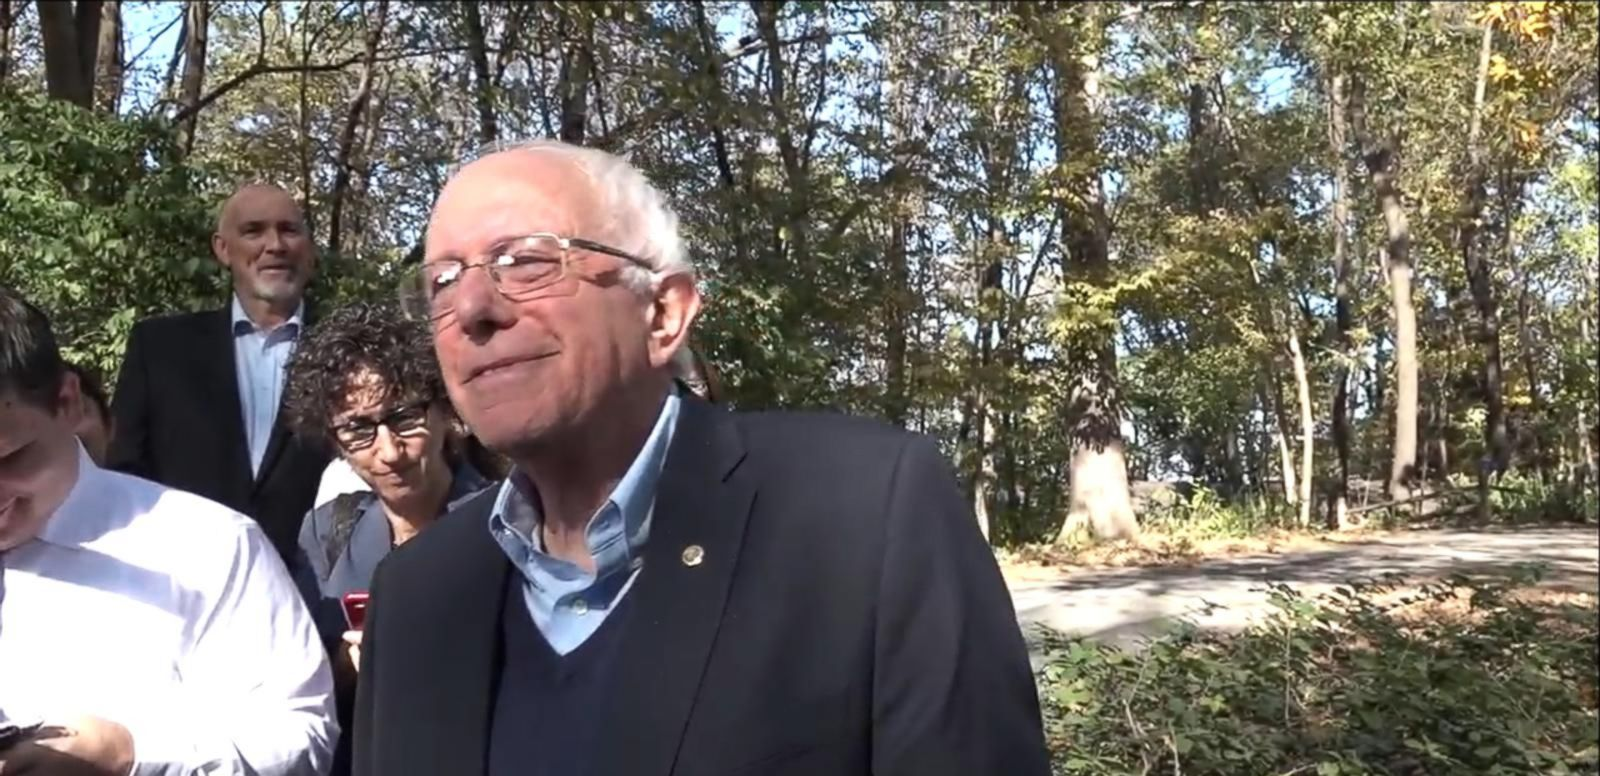 VIDEO: Sanders Confirms He Has Second Pair of Underwear